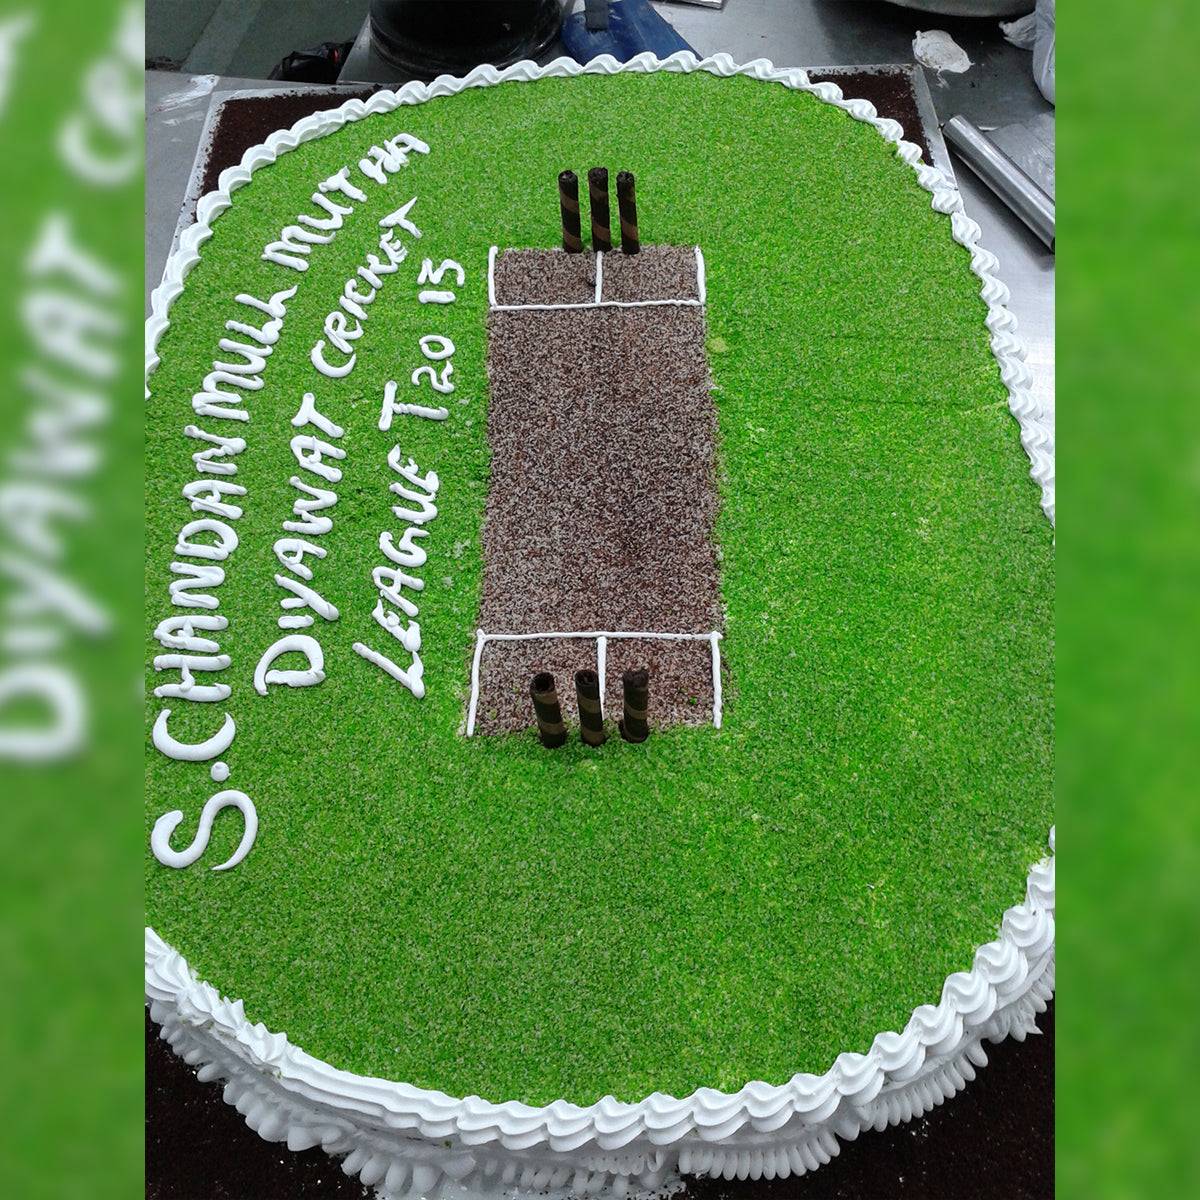 Cricket Ground Cake - CWD